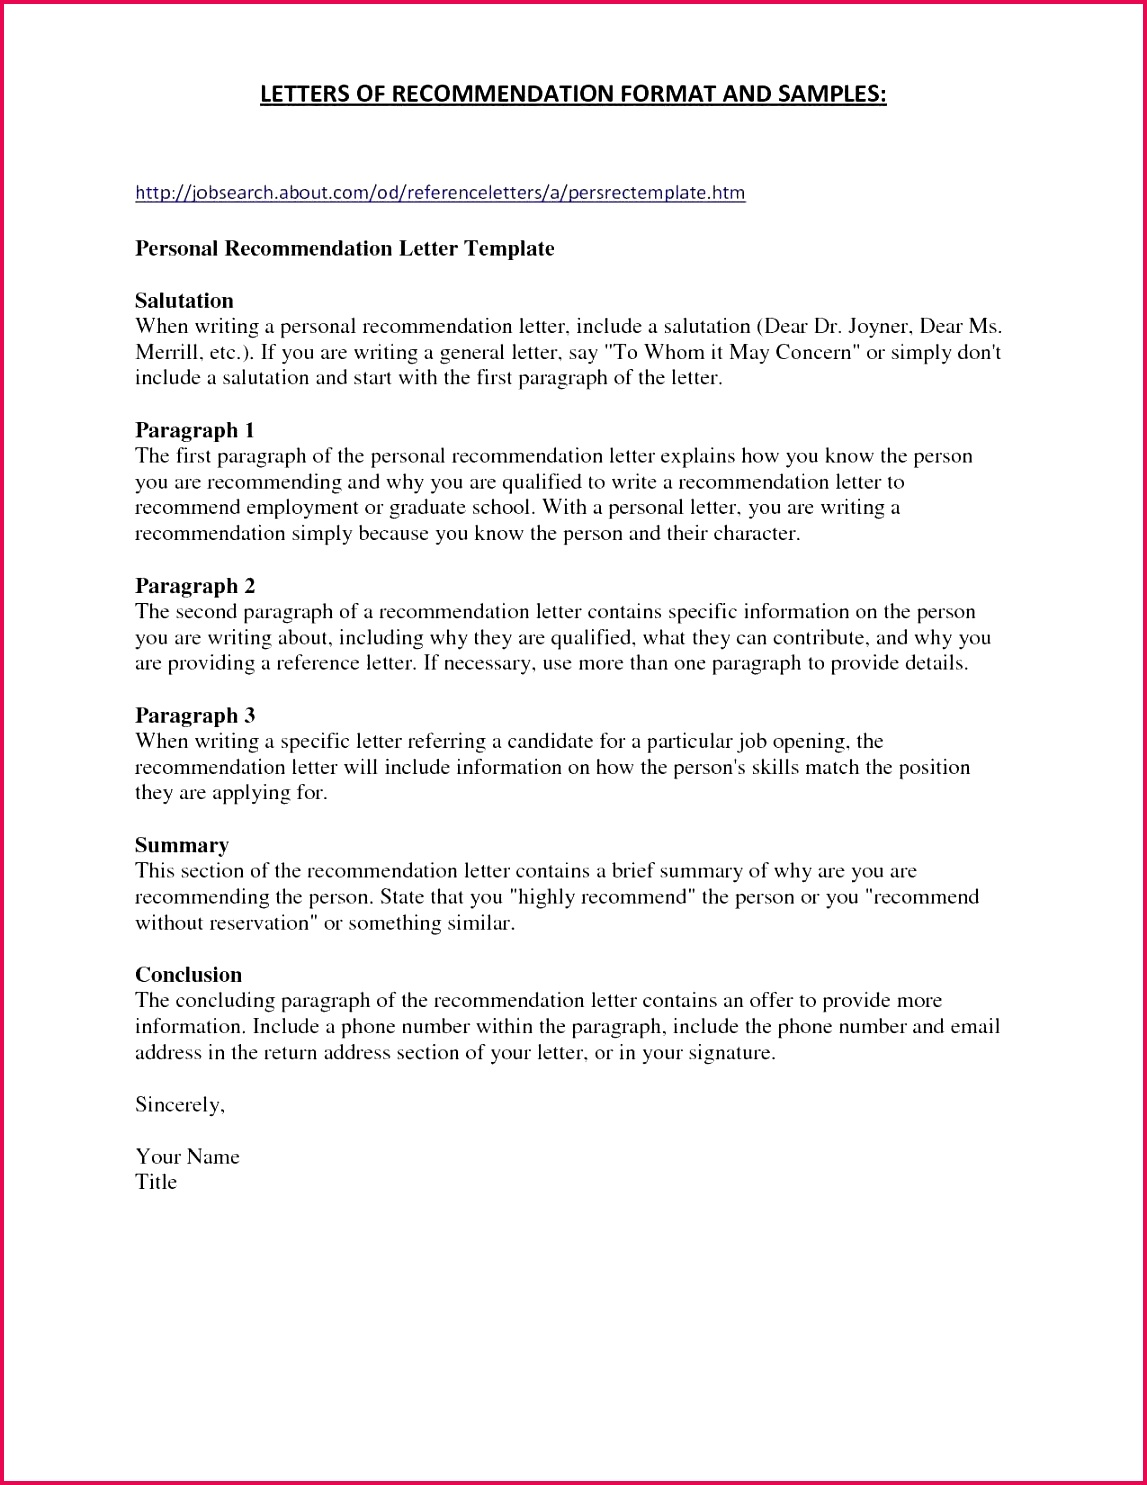 example cover letter after career break awesome employment verification letter template microsoft collection photos of example cover letter after career break